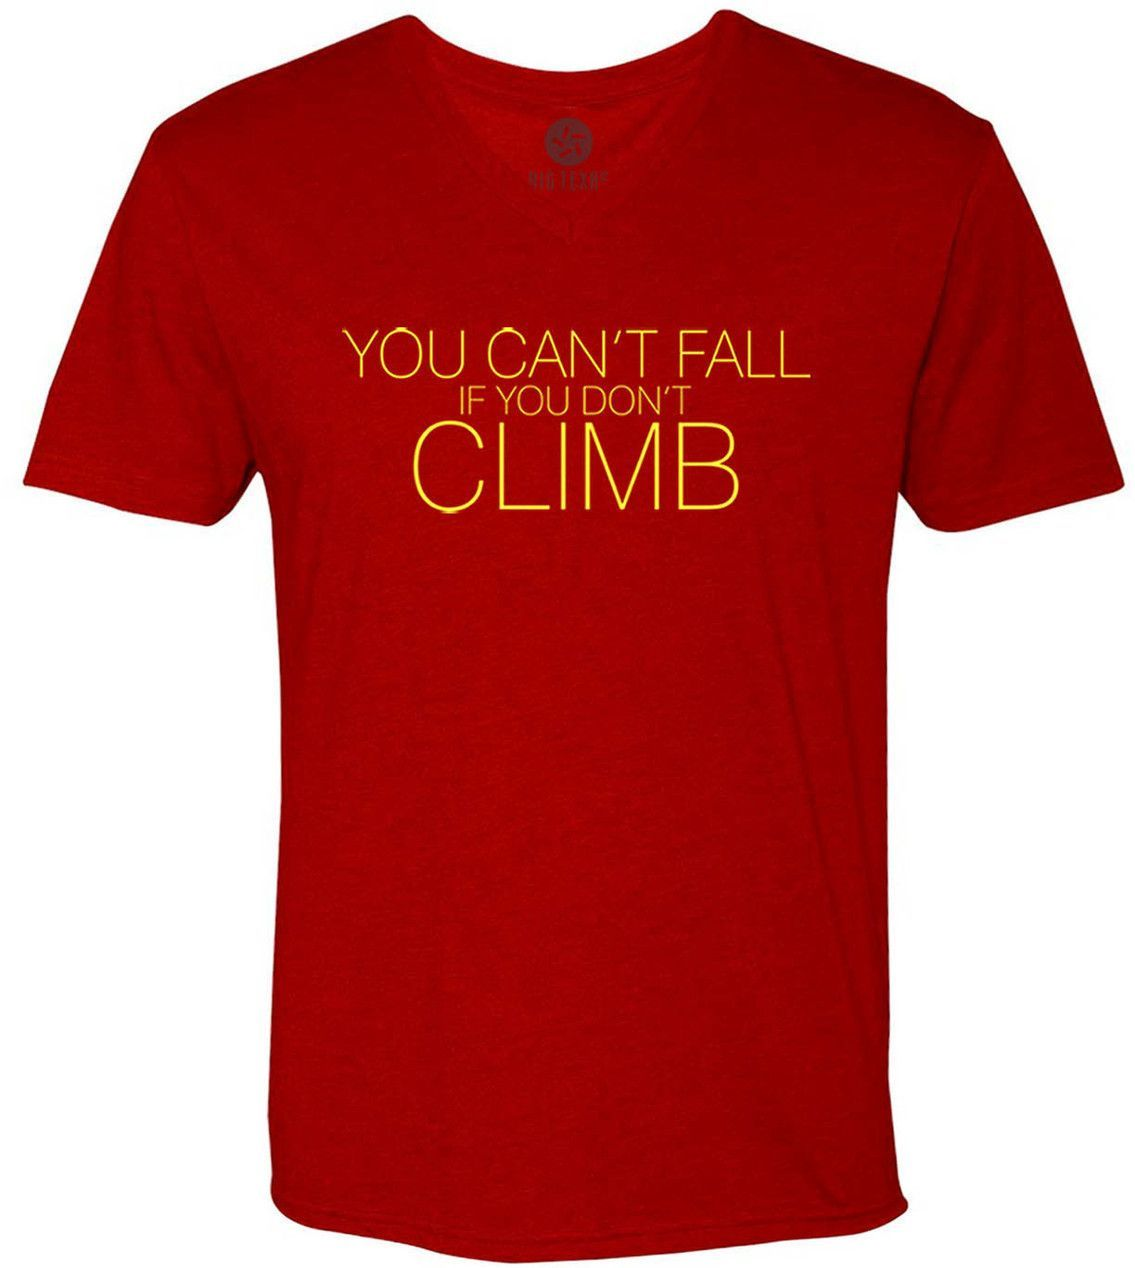 Cant Fall if You Dont Climb (Yellow) Short-Sleeve V-Neck T-Shirt